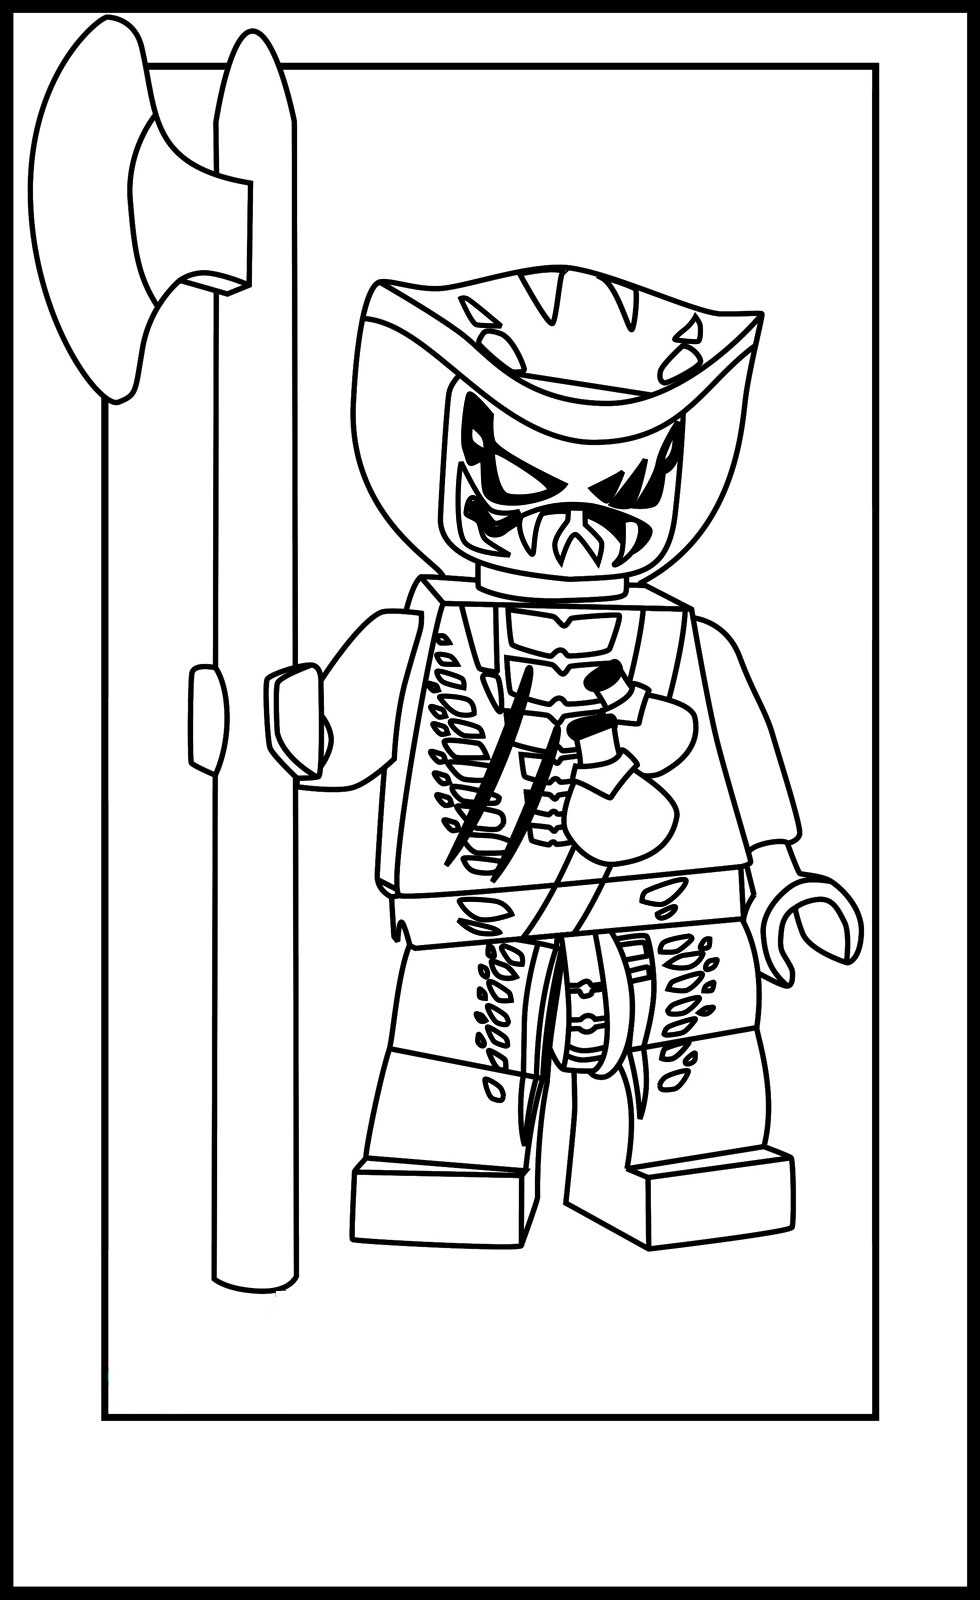 ninjago golden dragon coloring pages - ninjago dragon coloring sheets coloring pages